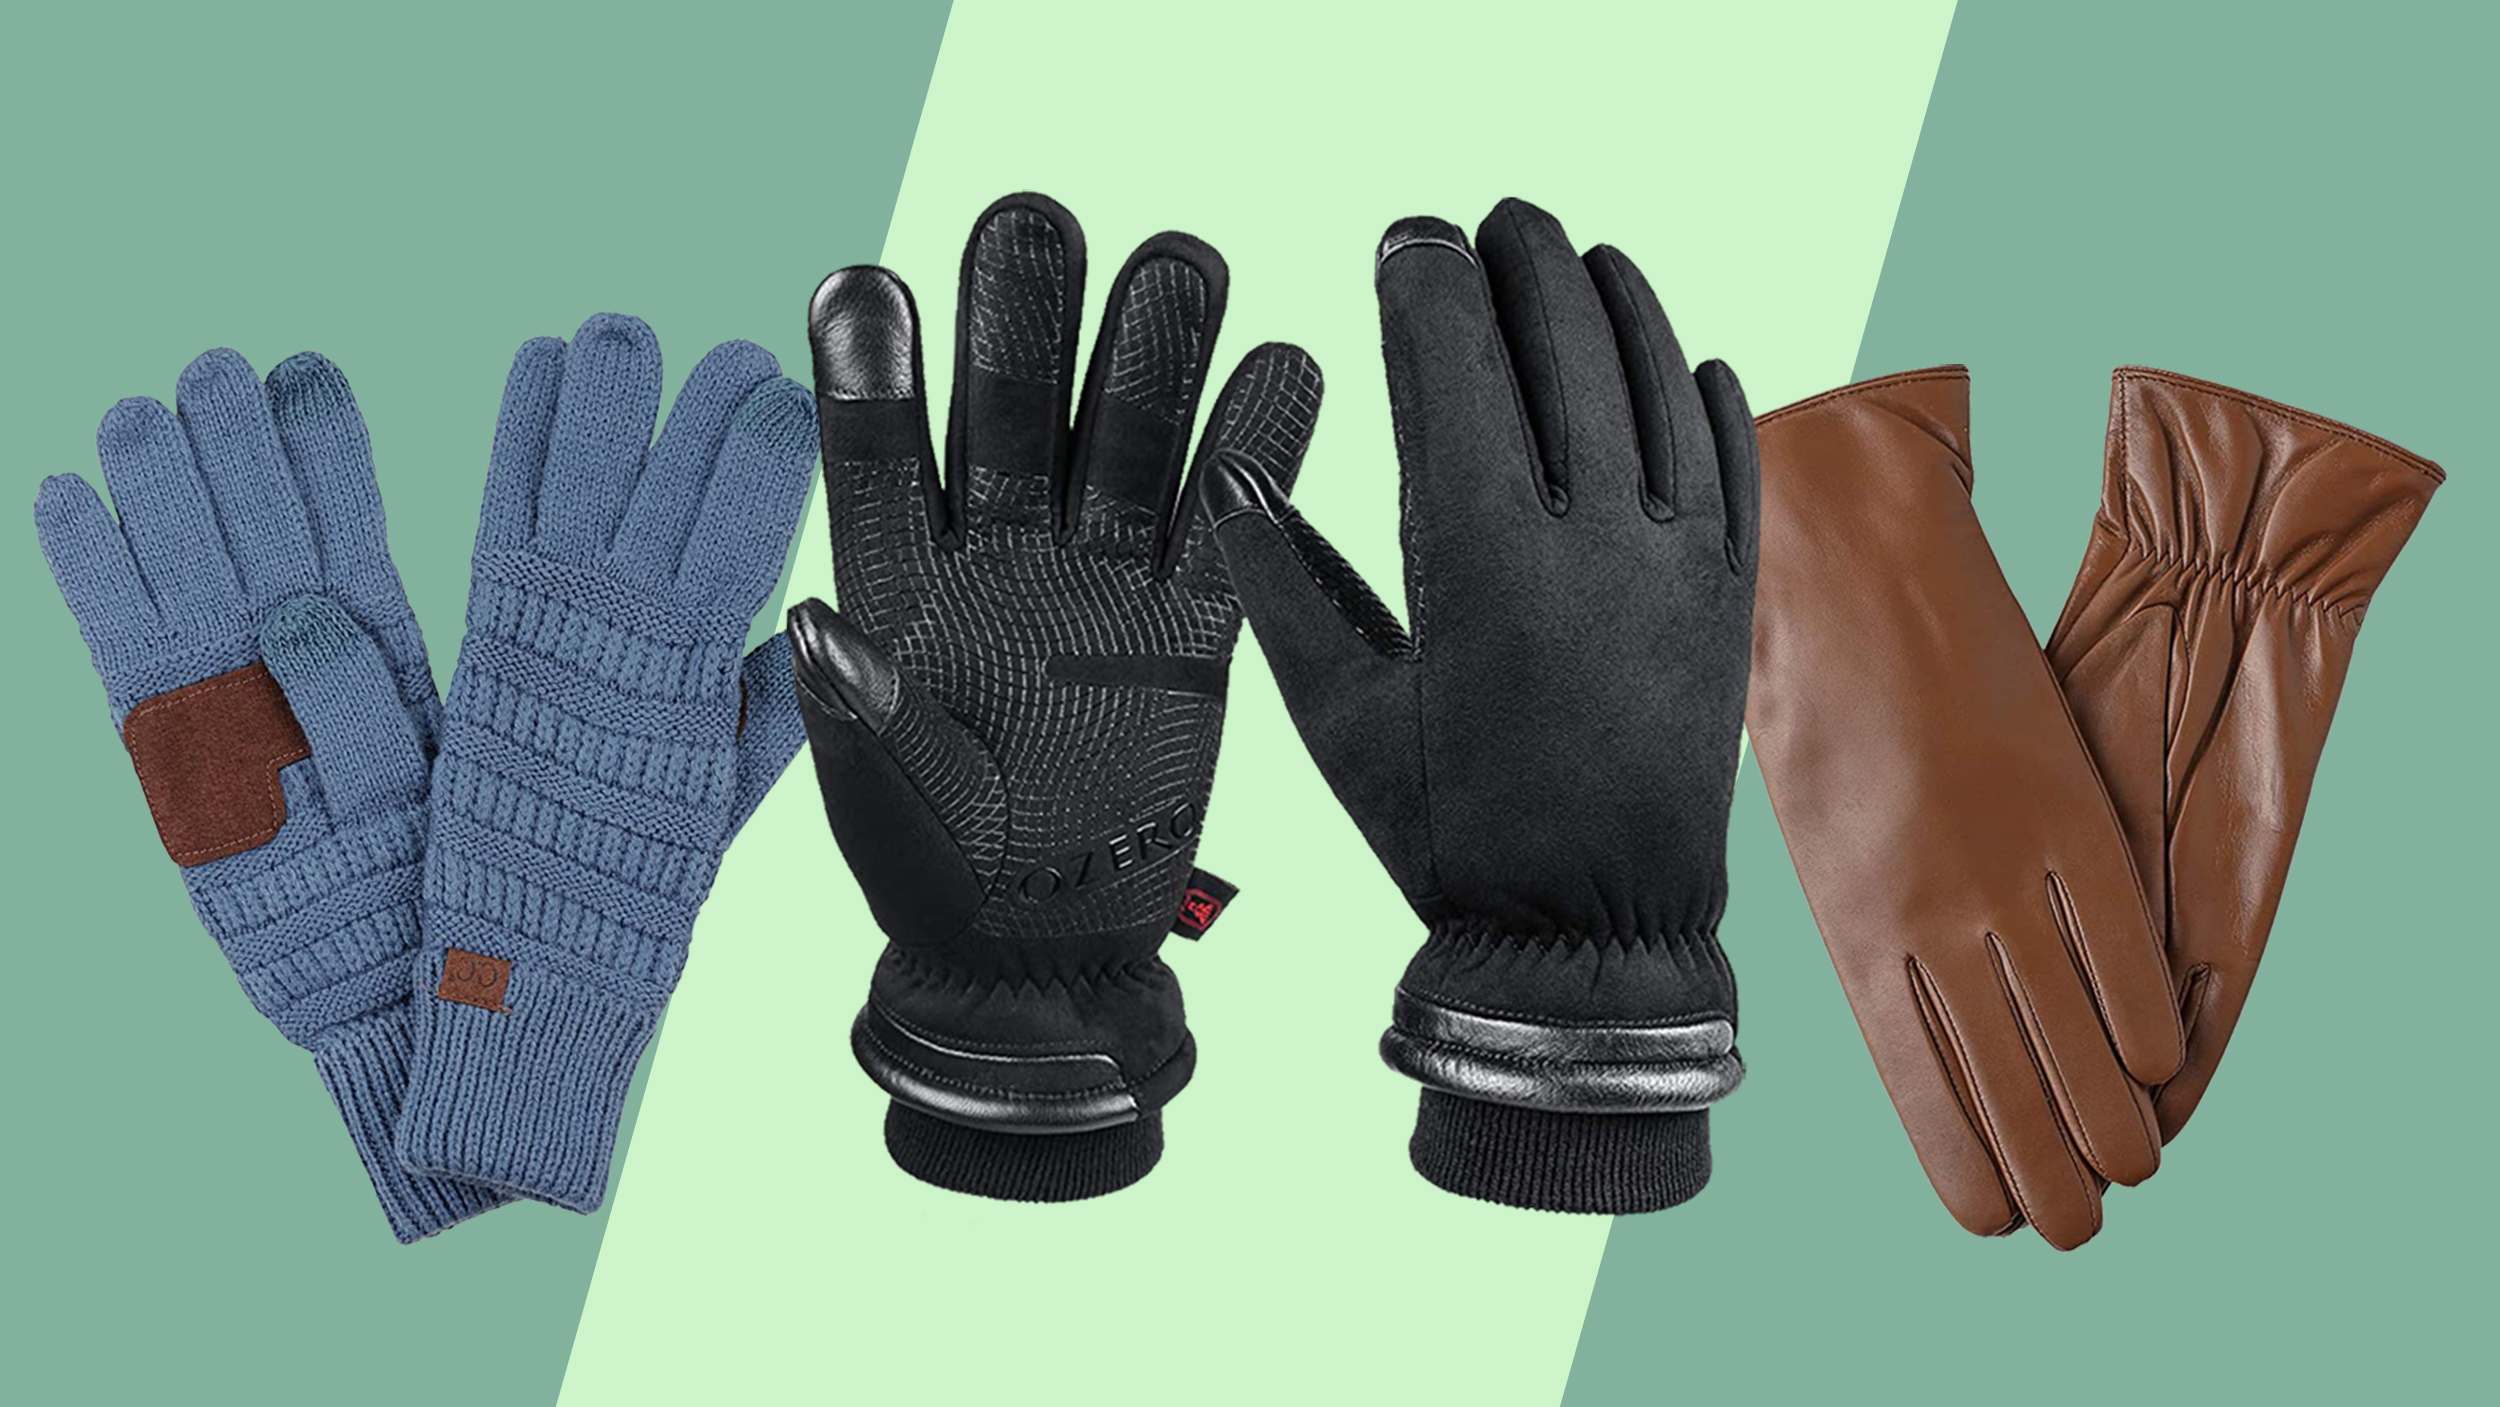 Which type of gloves is preferable in winters?